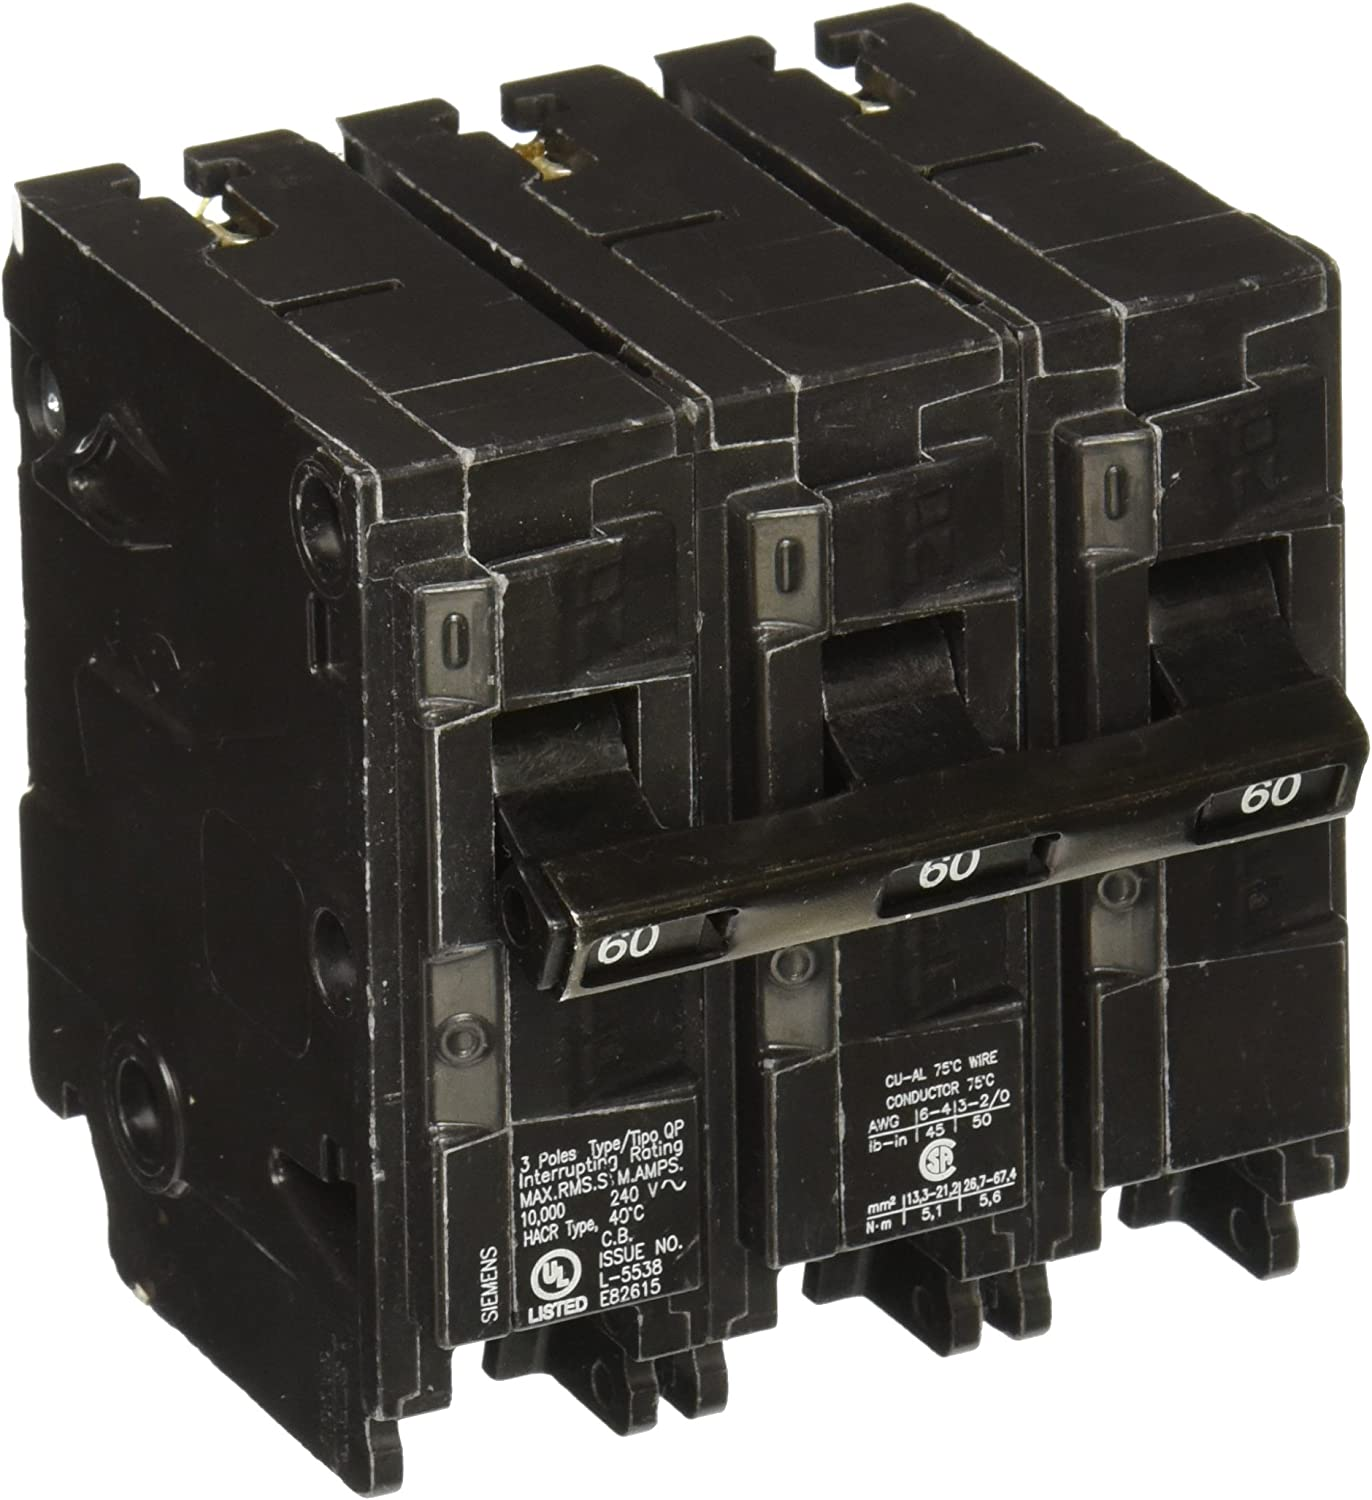 Q360 60-Amp Three Pole Type QP Circuit Breaker